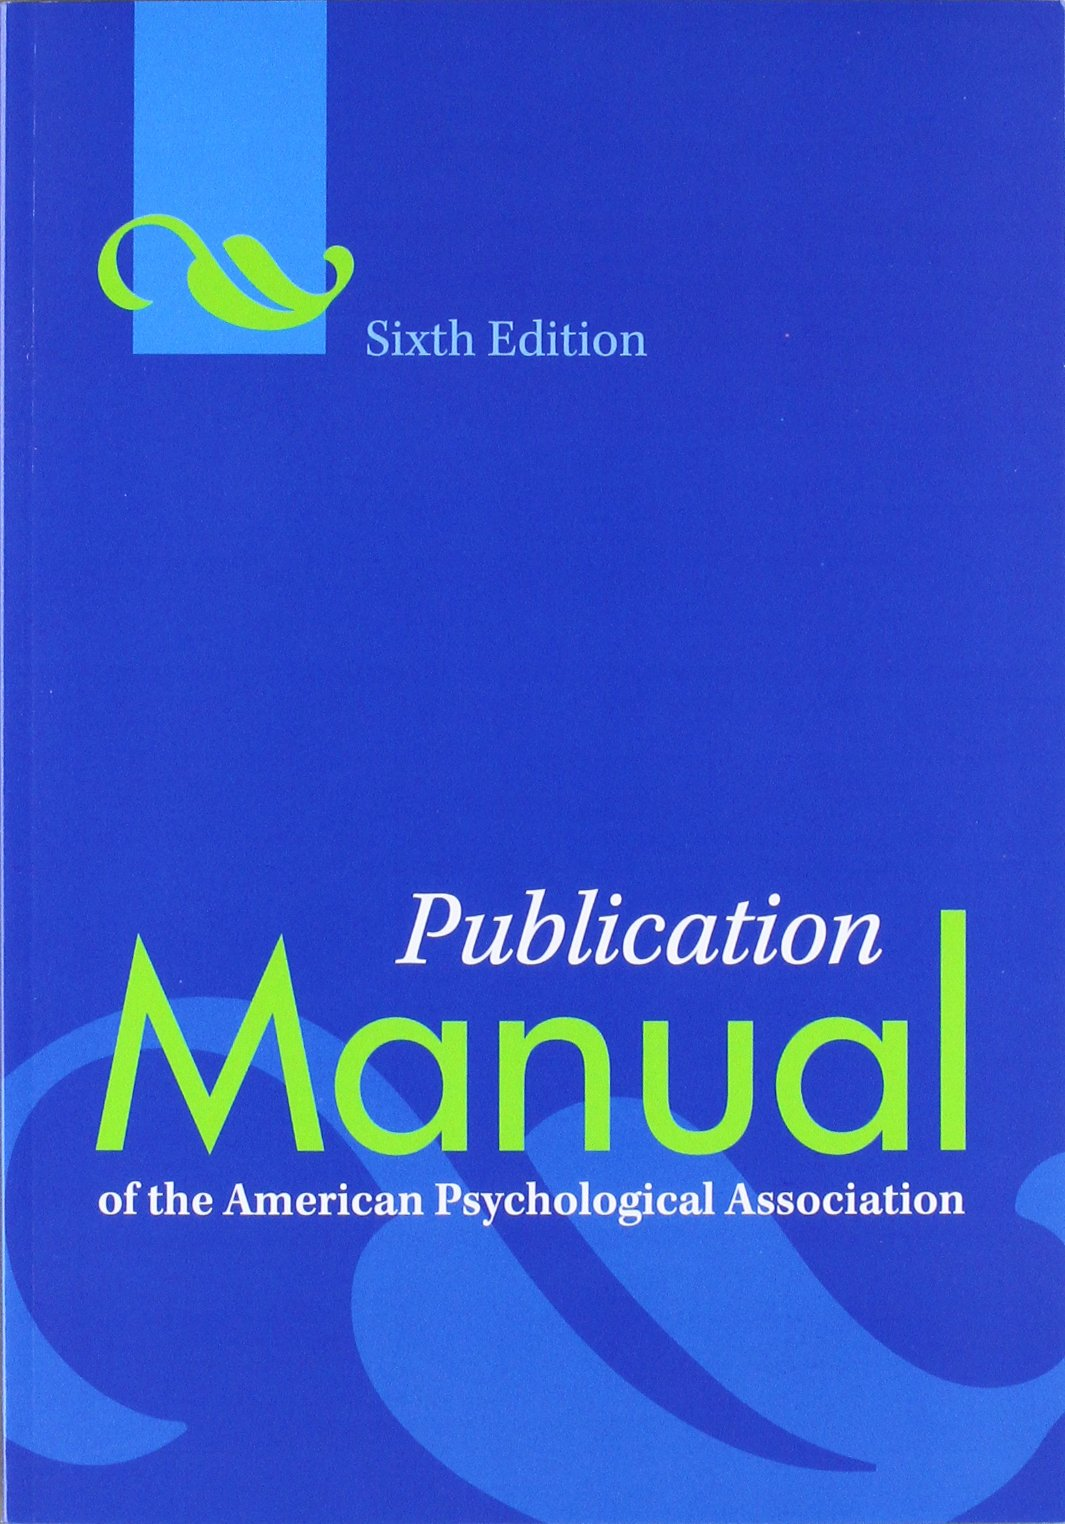 Publication Manual of the American Psychological Association, 6th Edition by Amer Psychological Assn